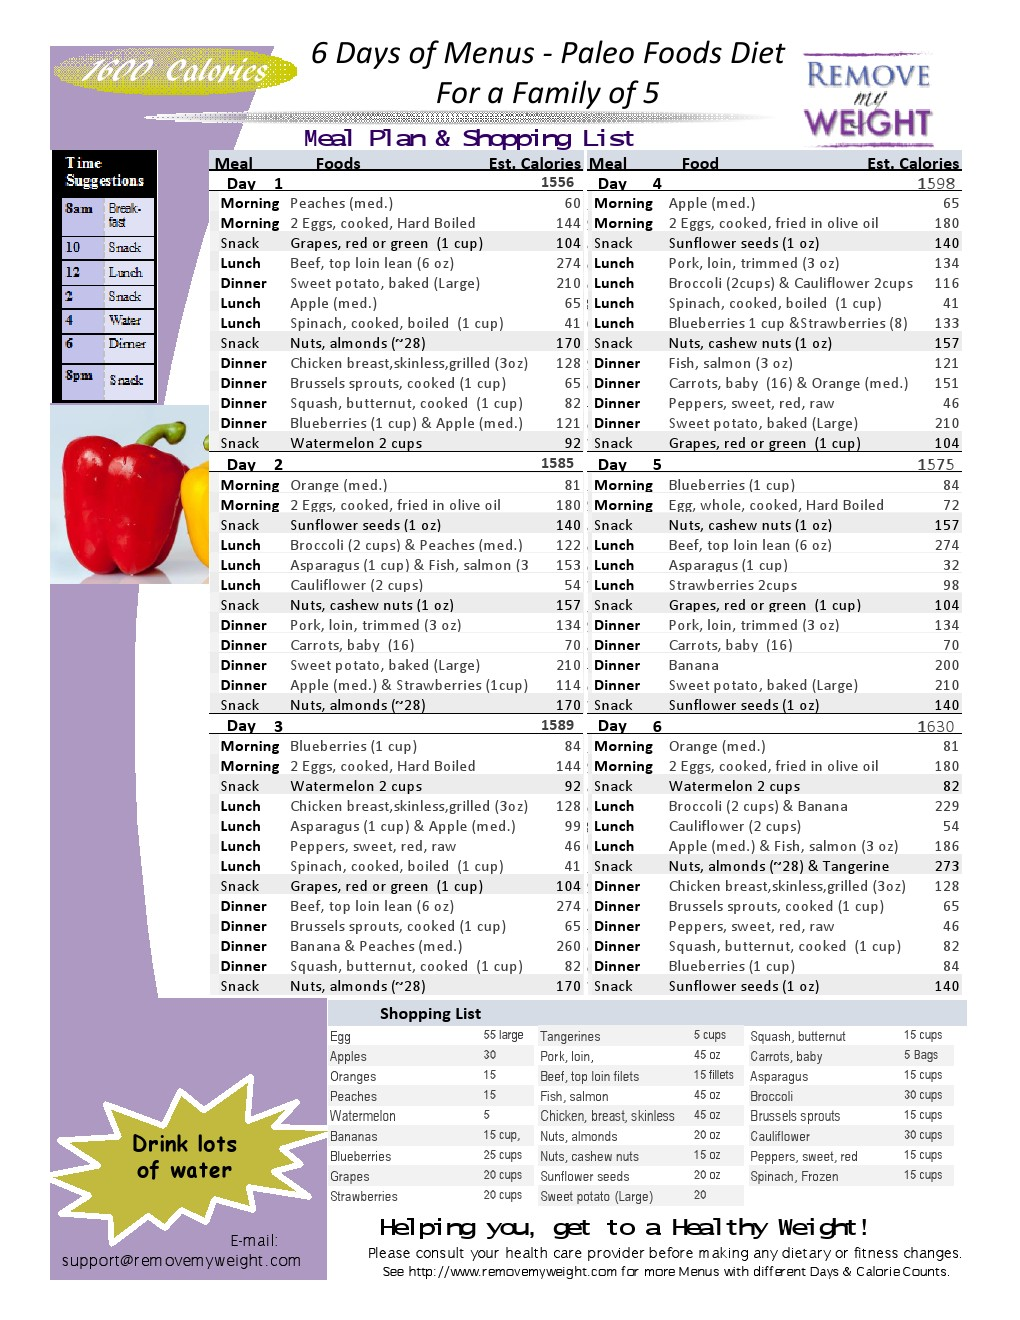 ... Calories a Day Meal Plan to Lose Weight - Menu Plan for Weight Loss